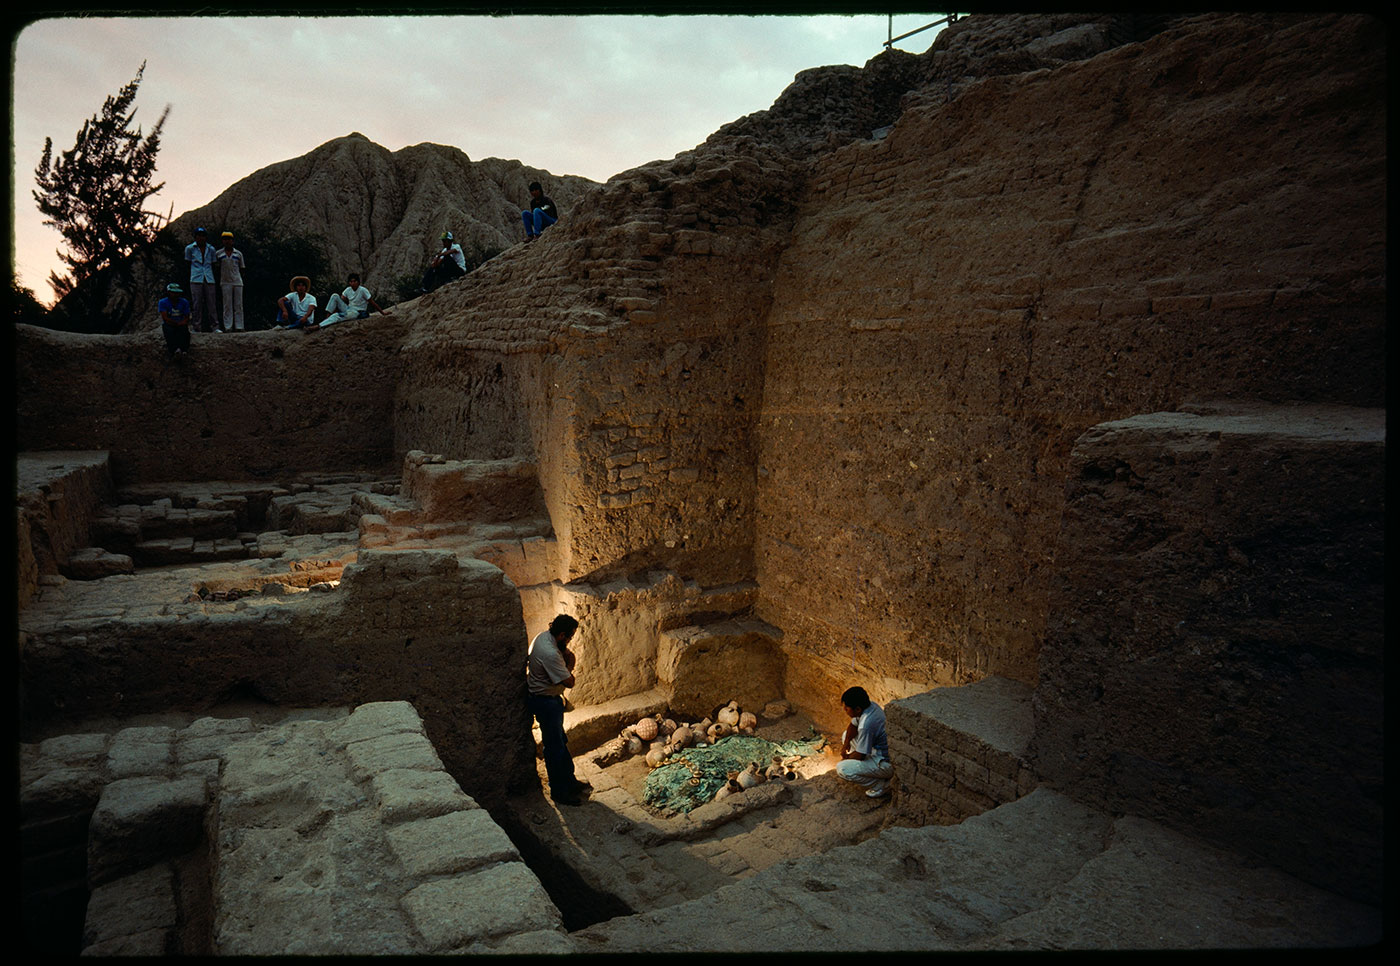 Archaeologists Walter Alva (left) and Luis Chero gaze into the recently excavated tomb. Ceramic jars surrounding the warrior-priest's remains may have held offerings.